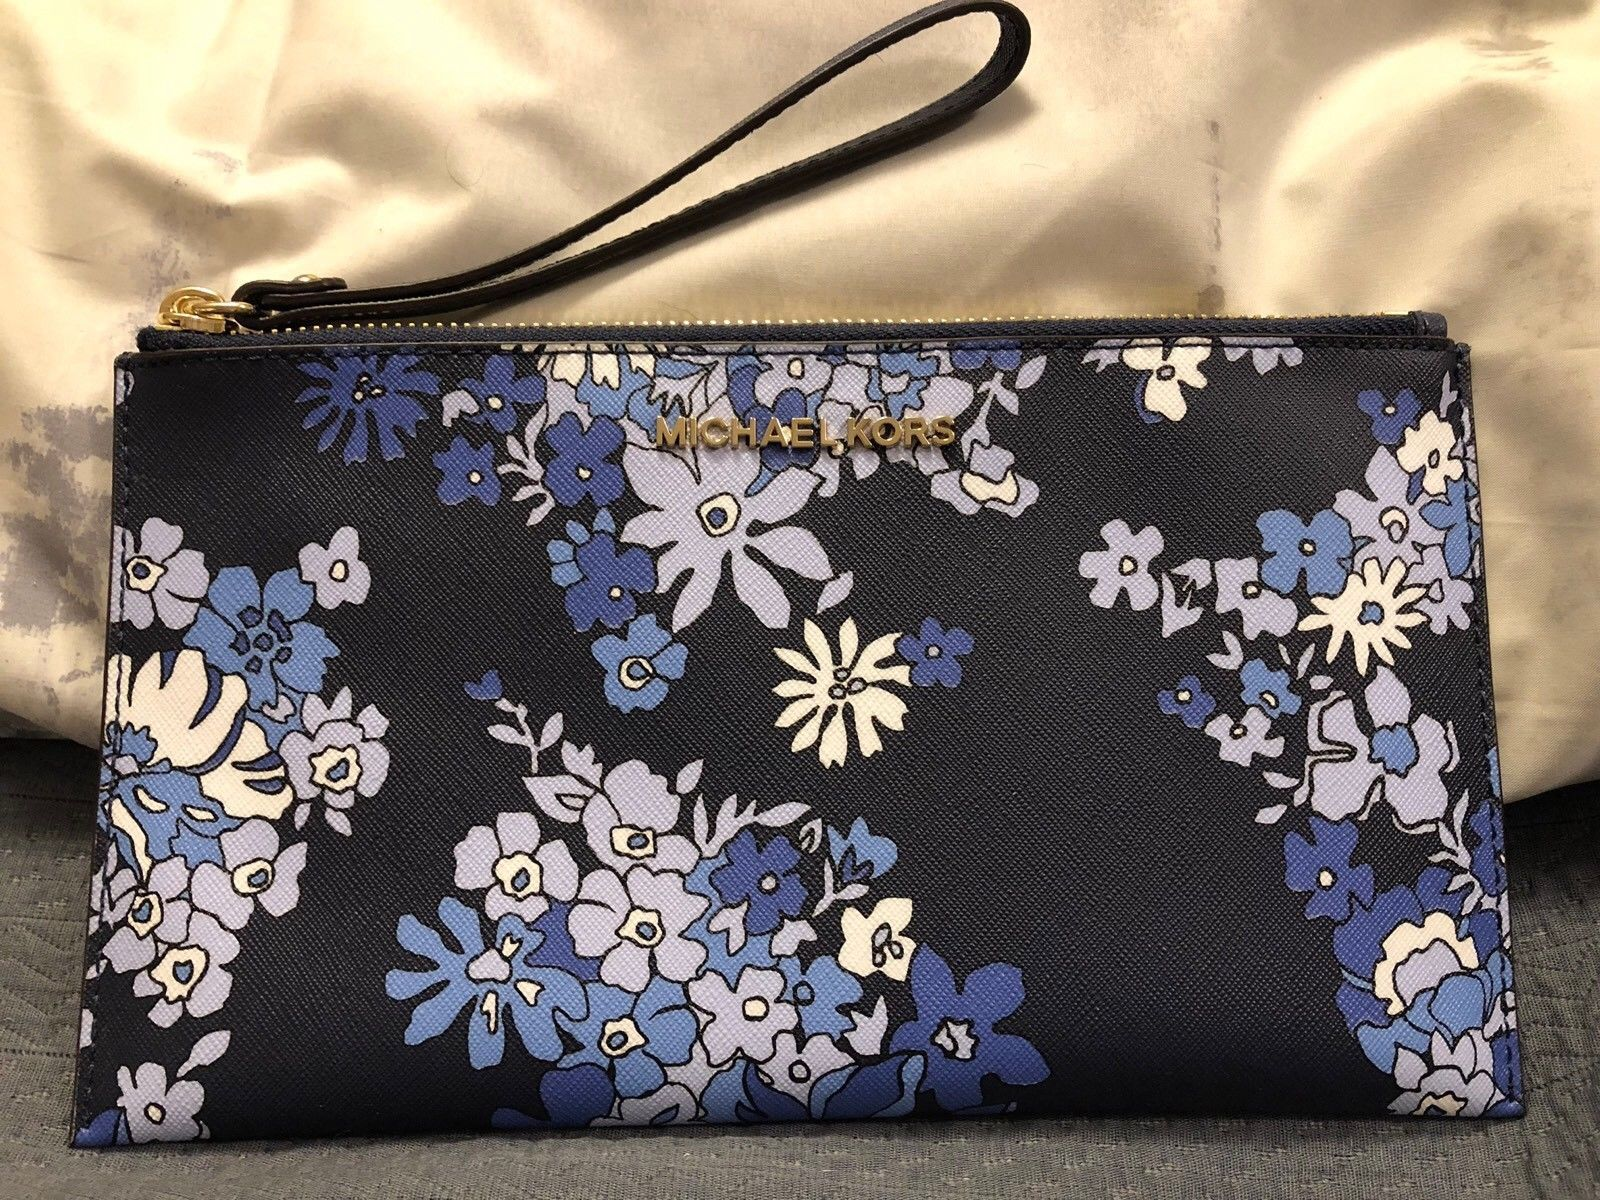 8e319c1b93e9 S l1600. S l1600. Previous. NWT MICHAEL KORS JET SET TRAVEL LARGE ZIP CLUTCH  NAVY FLORAL. NWT MICHAEL KORS JET ...